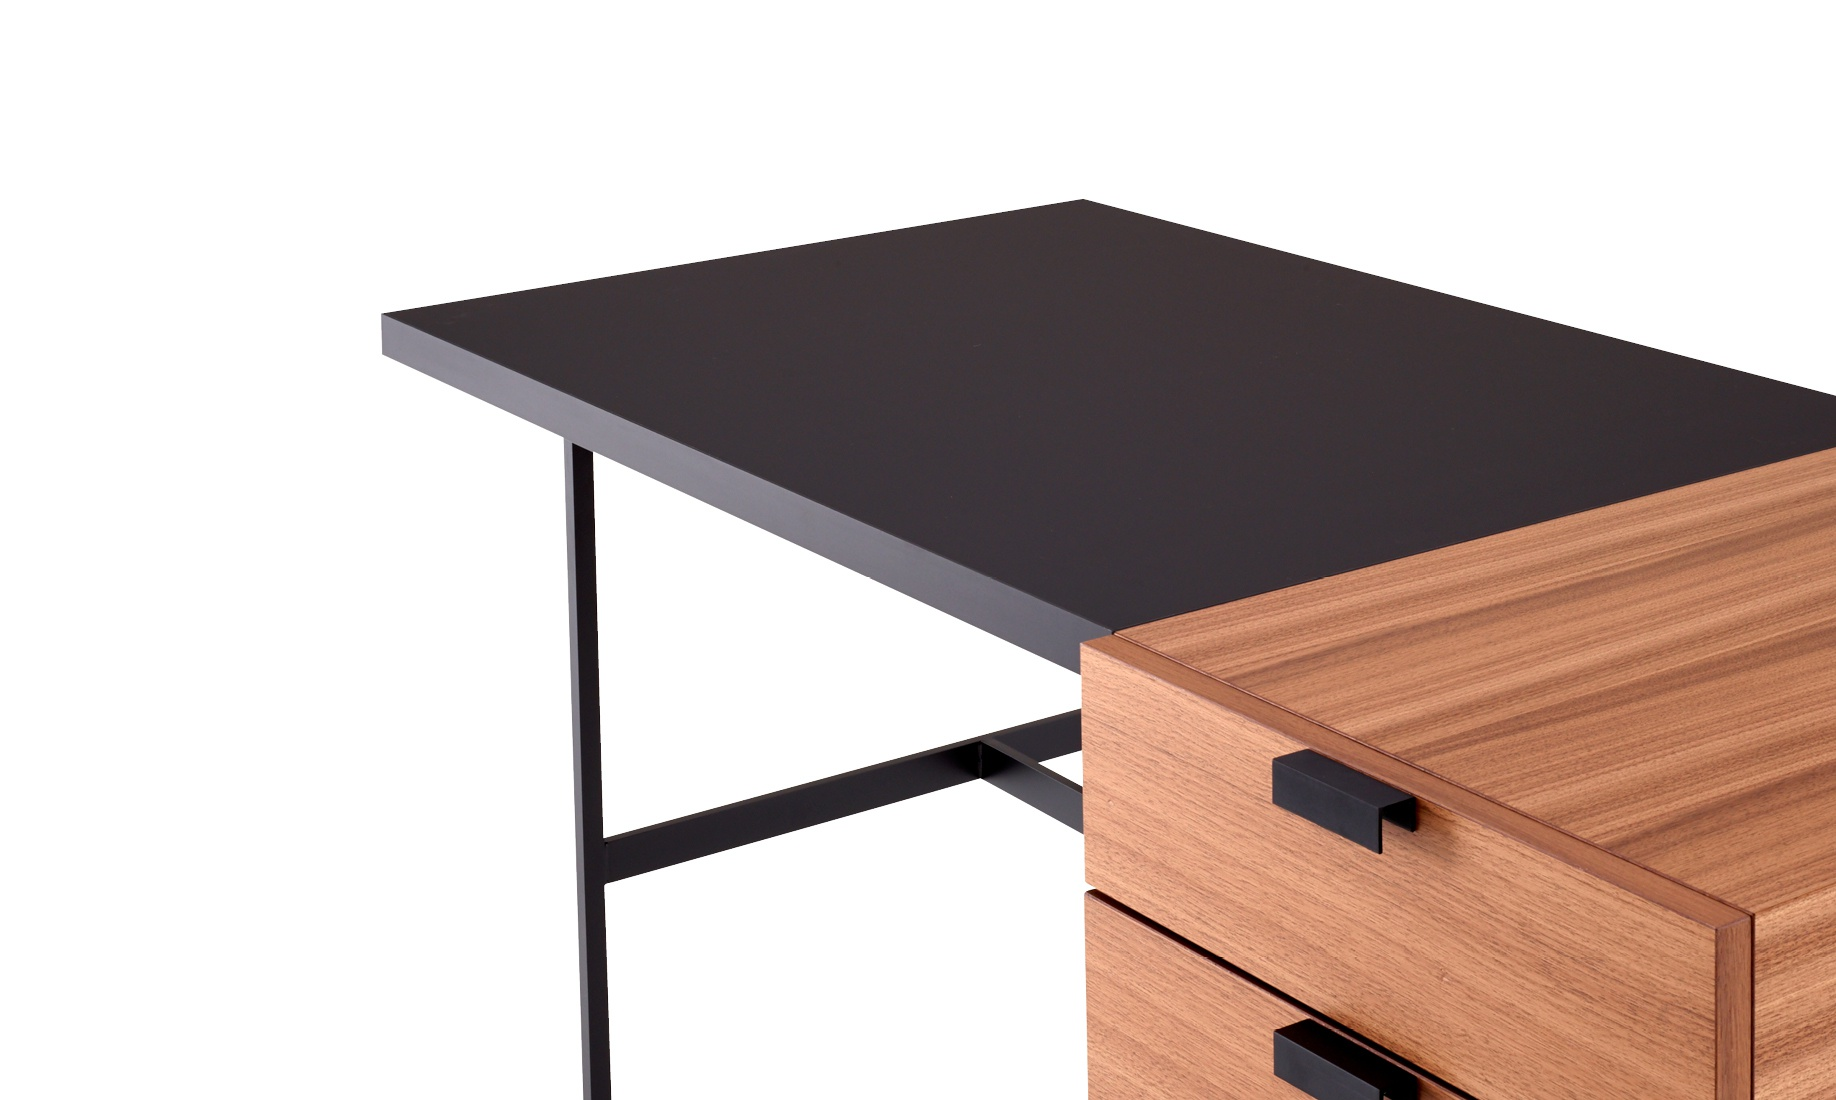 desks secretary ligne roset official site. Black Bedroom Furniture Sets. Home Design Ideas